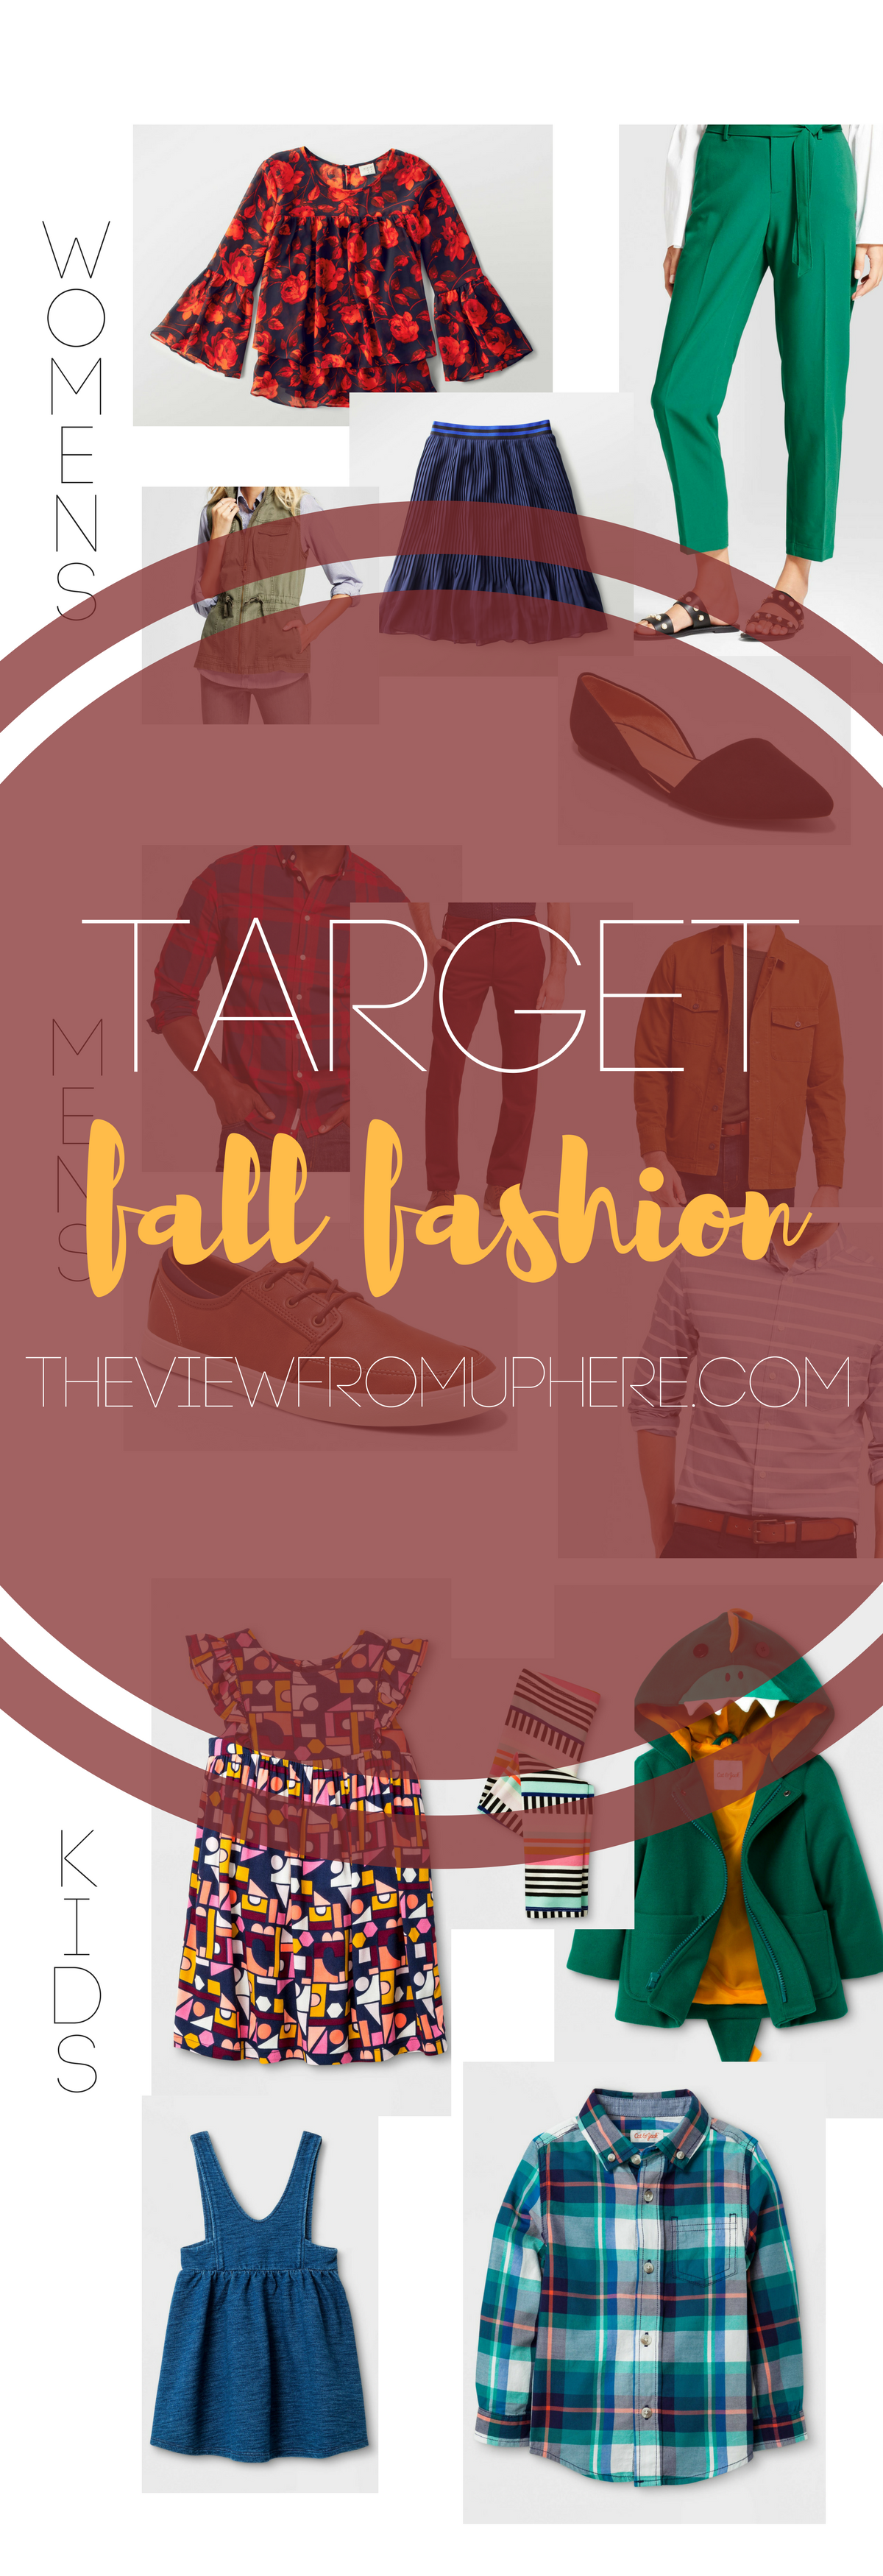 Target Fall Fashion #pumpkinpatchoutfitwomen Fall Shopping Guide, Fall Fashion Guide Fall Fashion Guide for Women, fall family pictures Fall Fashion for Men, Fall Fashion for Kids, Target Clothes, pumpkin patch outfit, Cat and Jack Clothes, A New Day Clothes, Goodfellow & Co. clothes, Target new clothing line, Target fall fashion #pumpkinpatchoutfitwomen